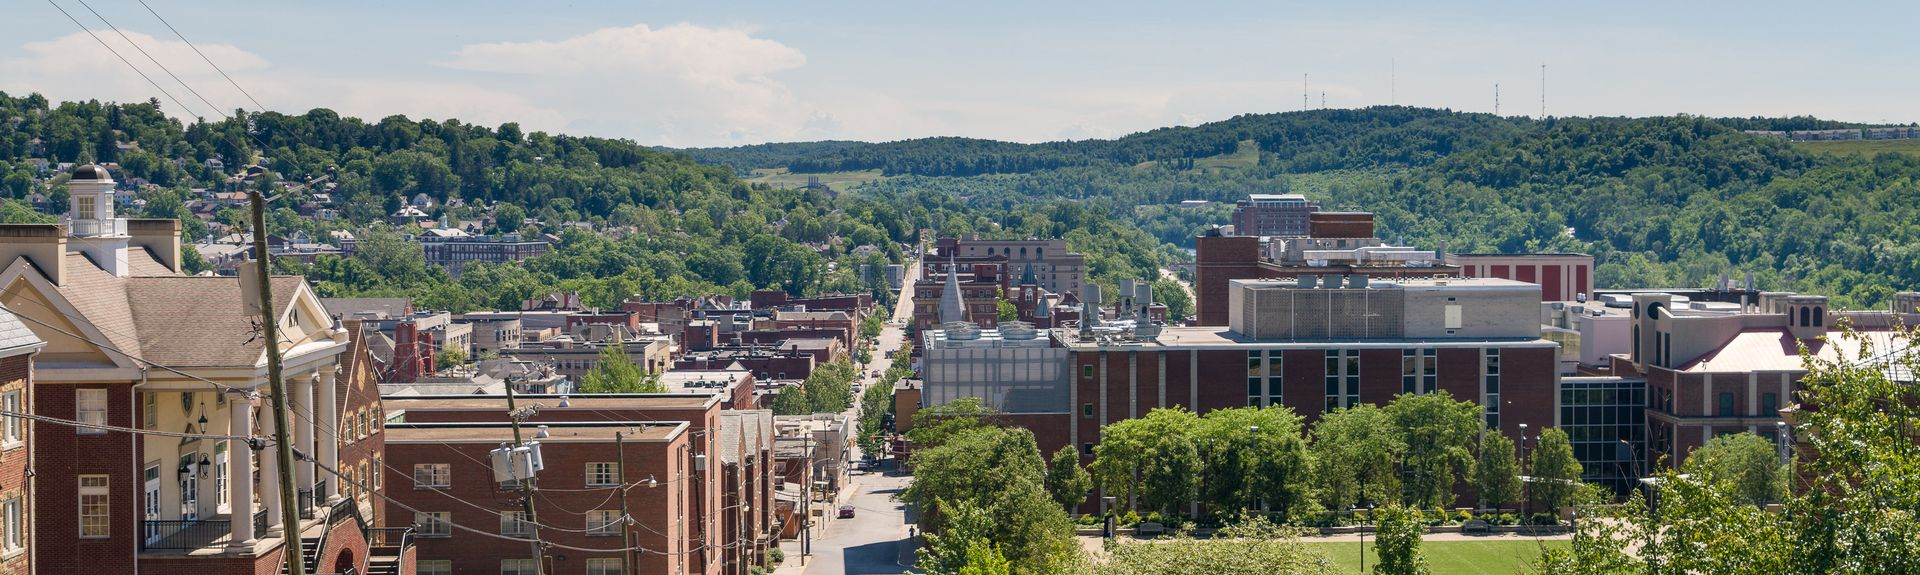 Morgantown, West Virginia, United States